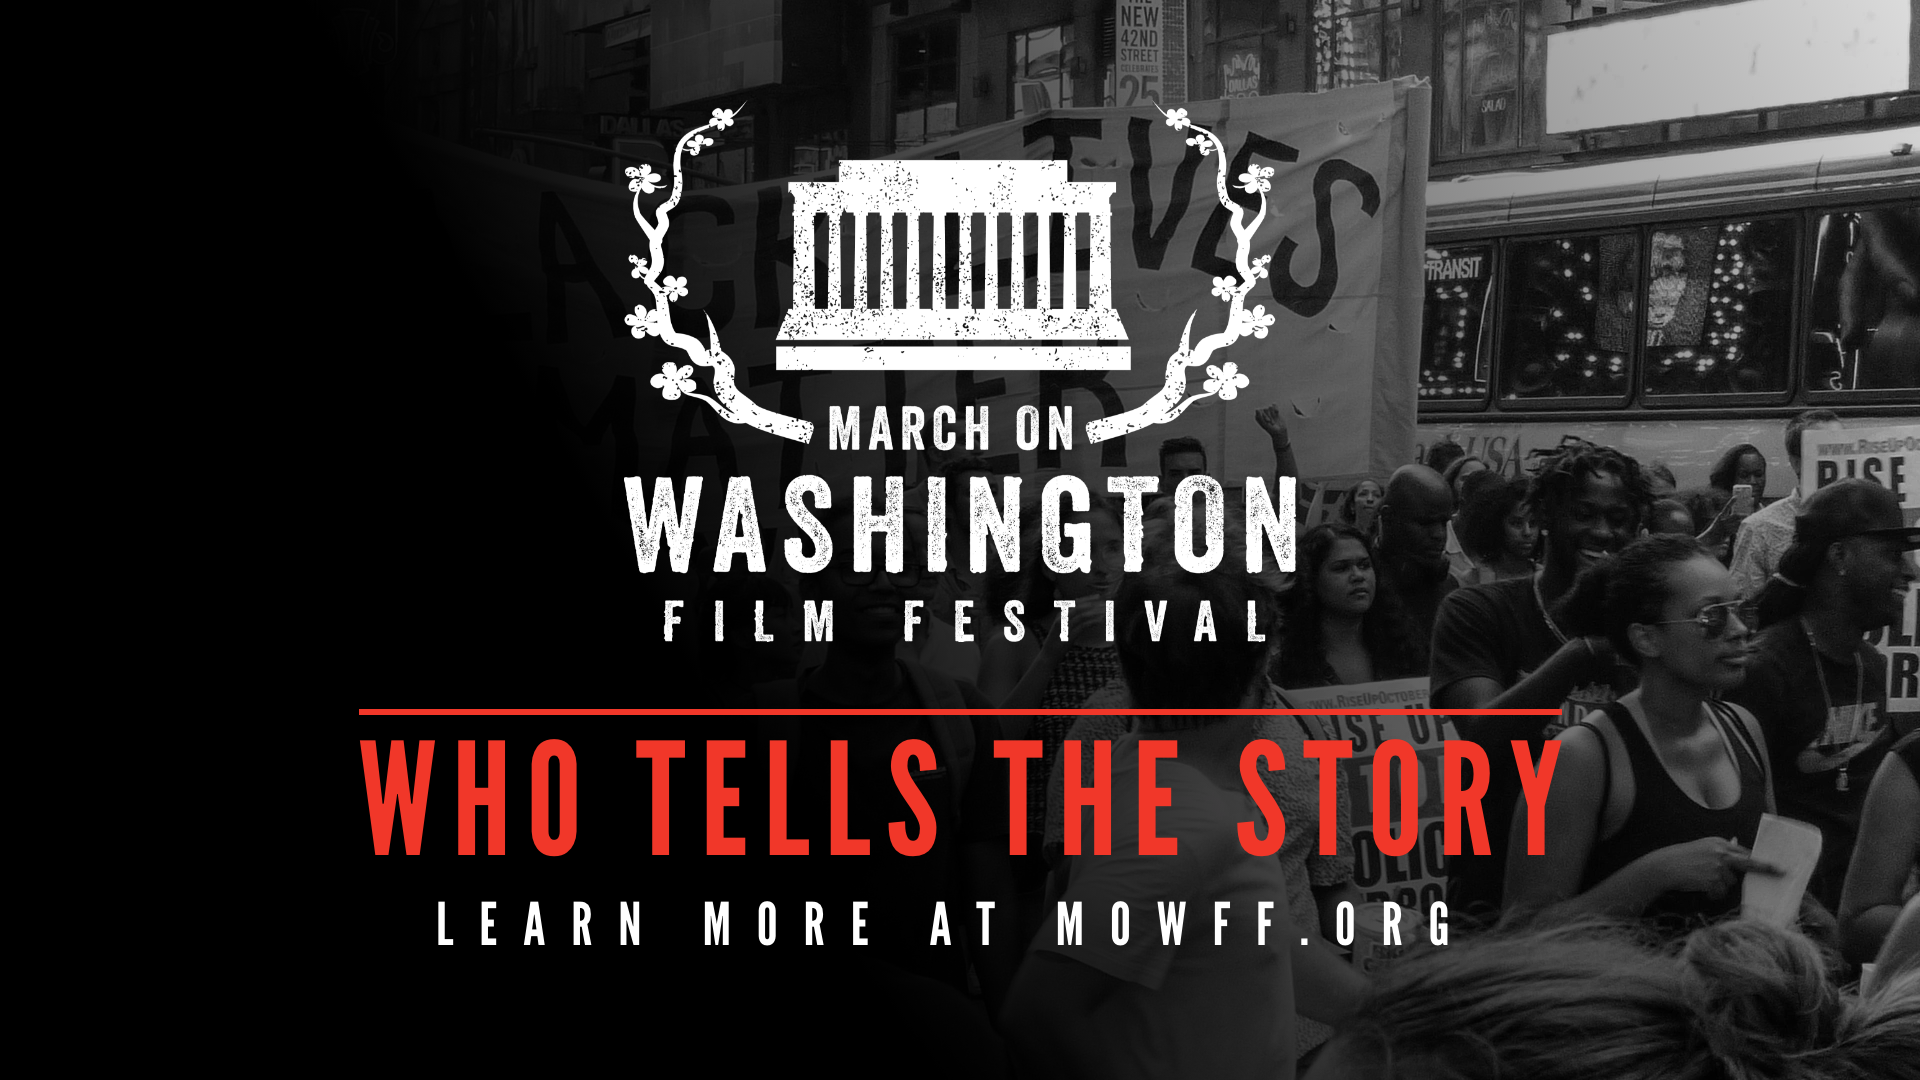 March On Washington Film Festival 2020